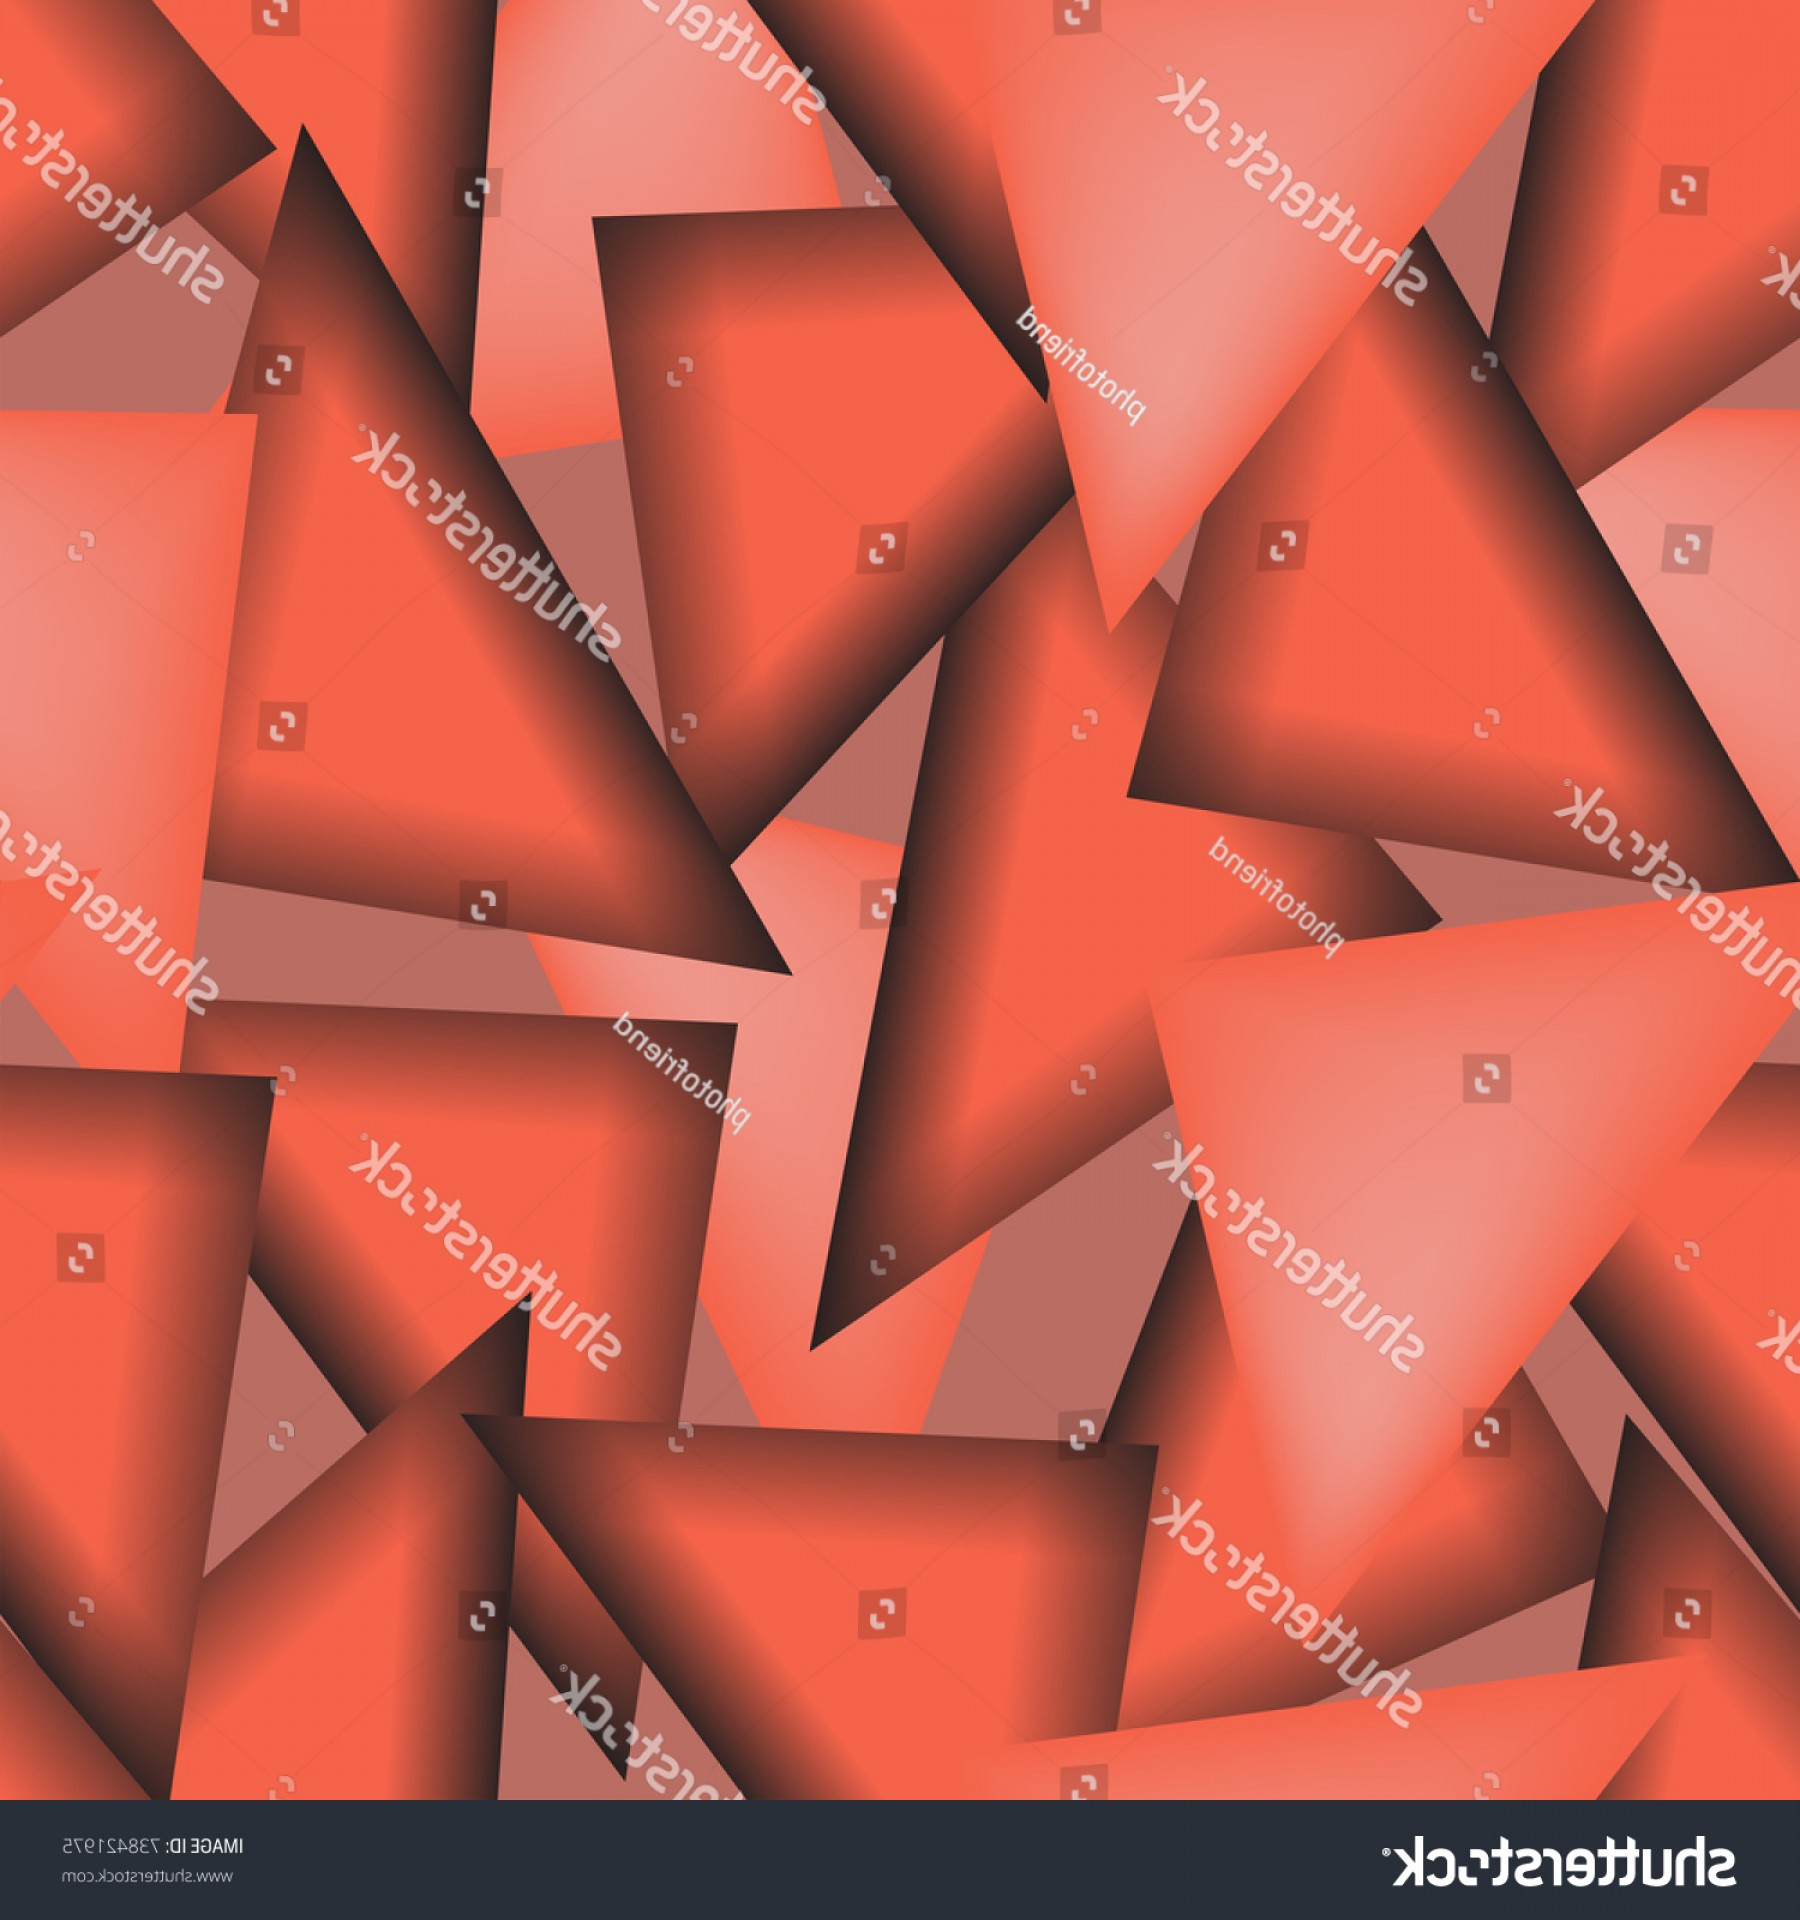 Vector Geometric Abstract Shapes Phone Wallpapers: Abstract Shapes Triangle Background Geometric Texture